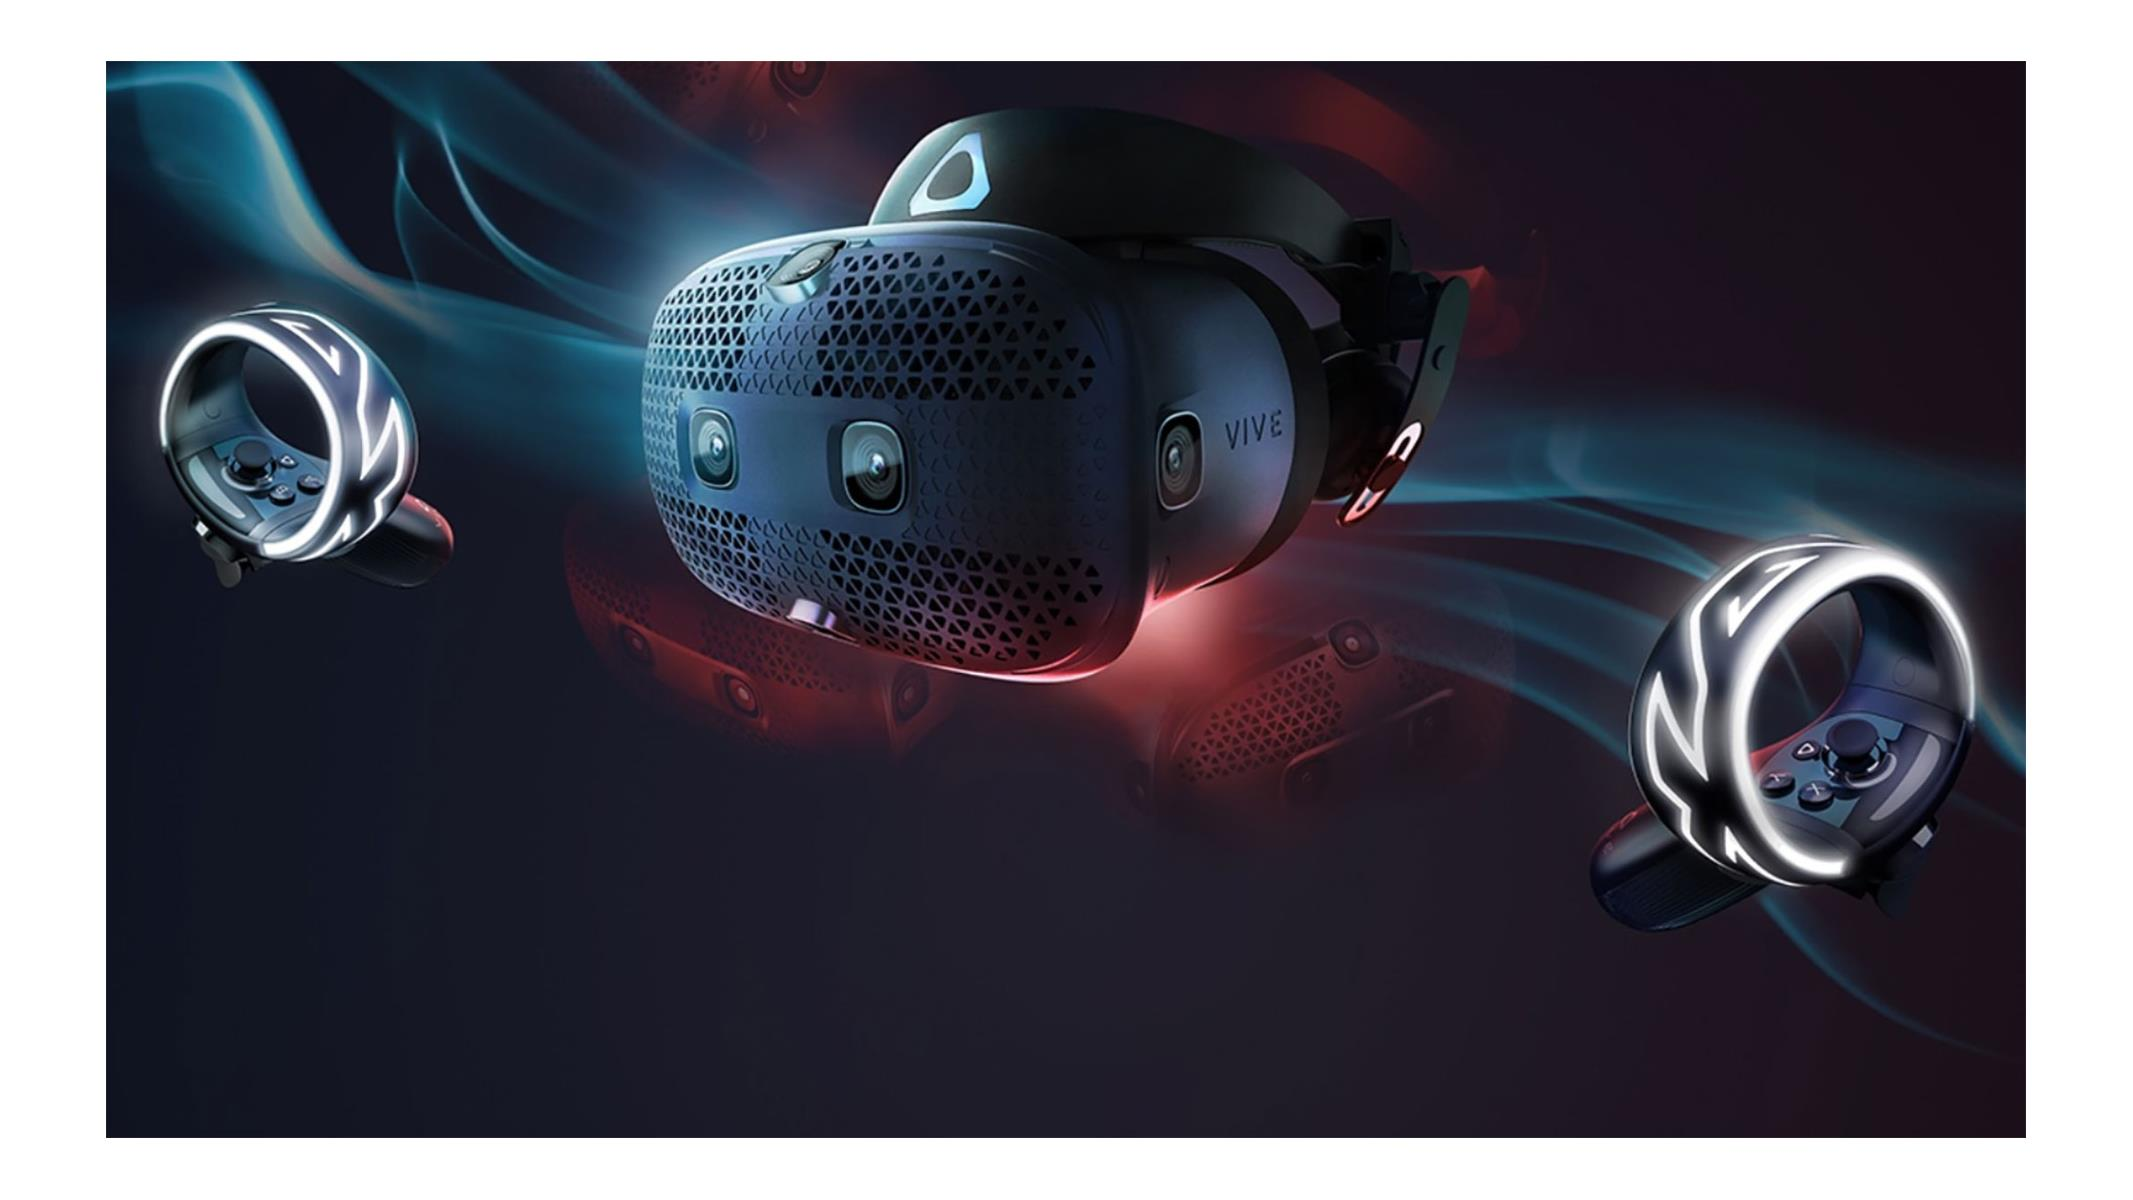 HTC's Vive Cosmos VR Headset Rocks Nearly Twice As Many